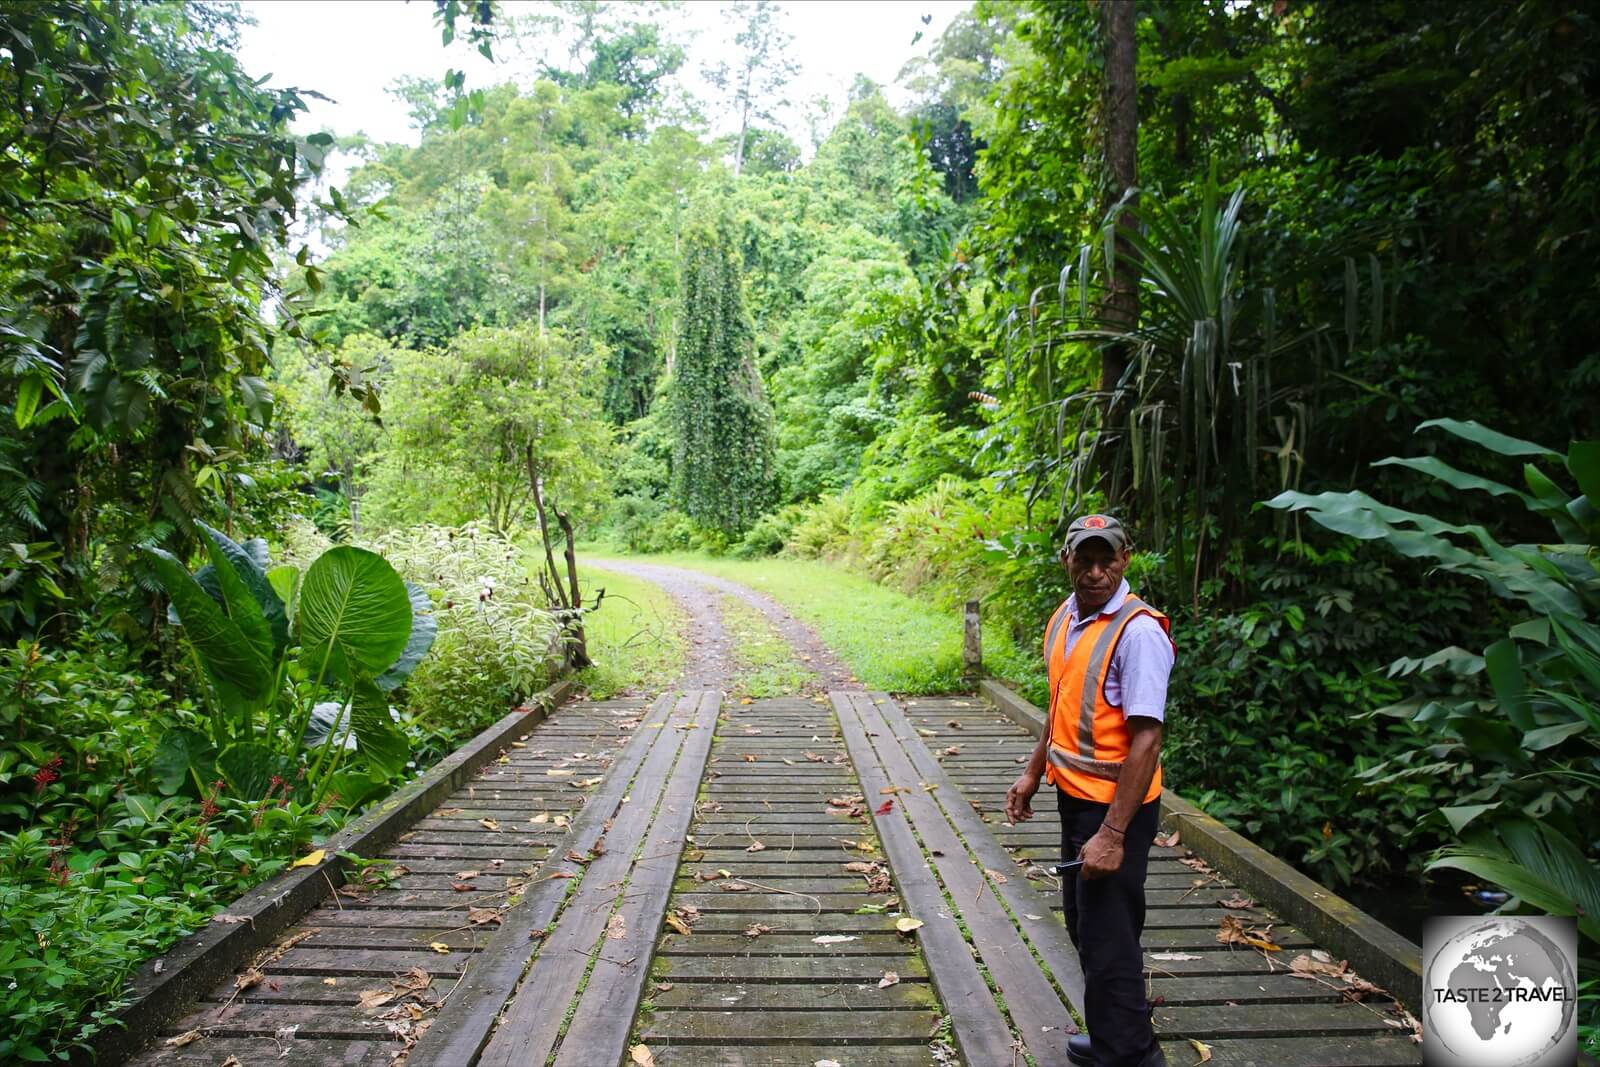 The friendly security guard at Lae Botanical Garden. I was not allowed to proceed beyond this bridge.